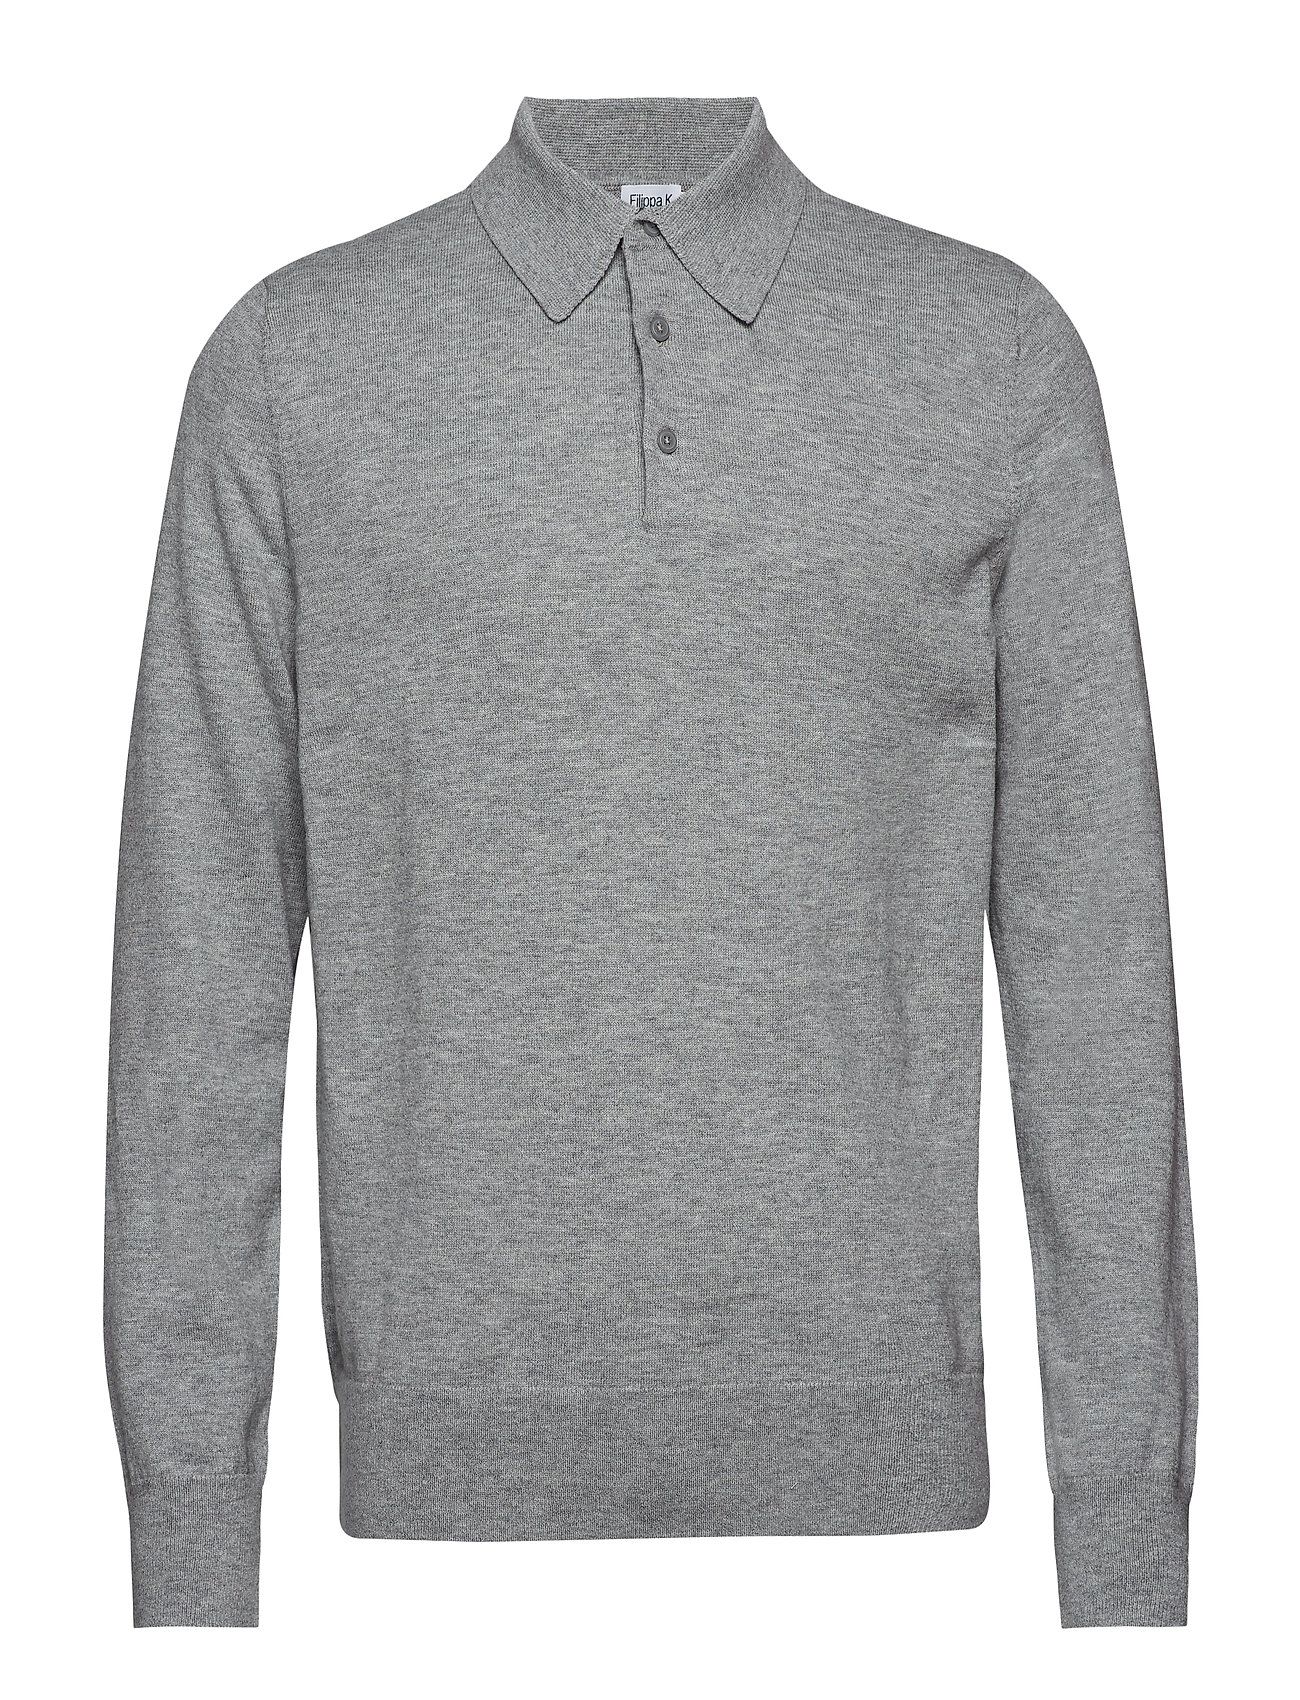 K MKnitted GreyFilippa Polo MKnitted GreyFilippa Shirtlight Shirtlight K MKnitted Polo 8nPk0wO